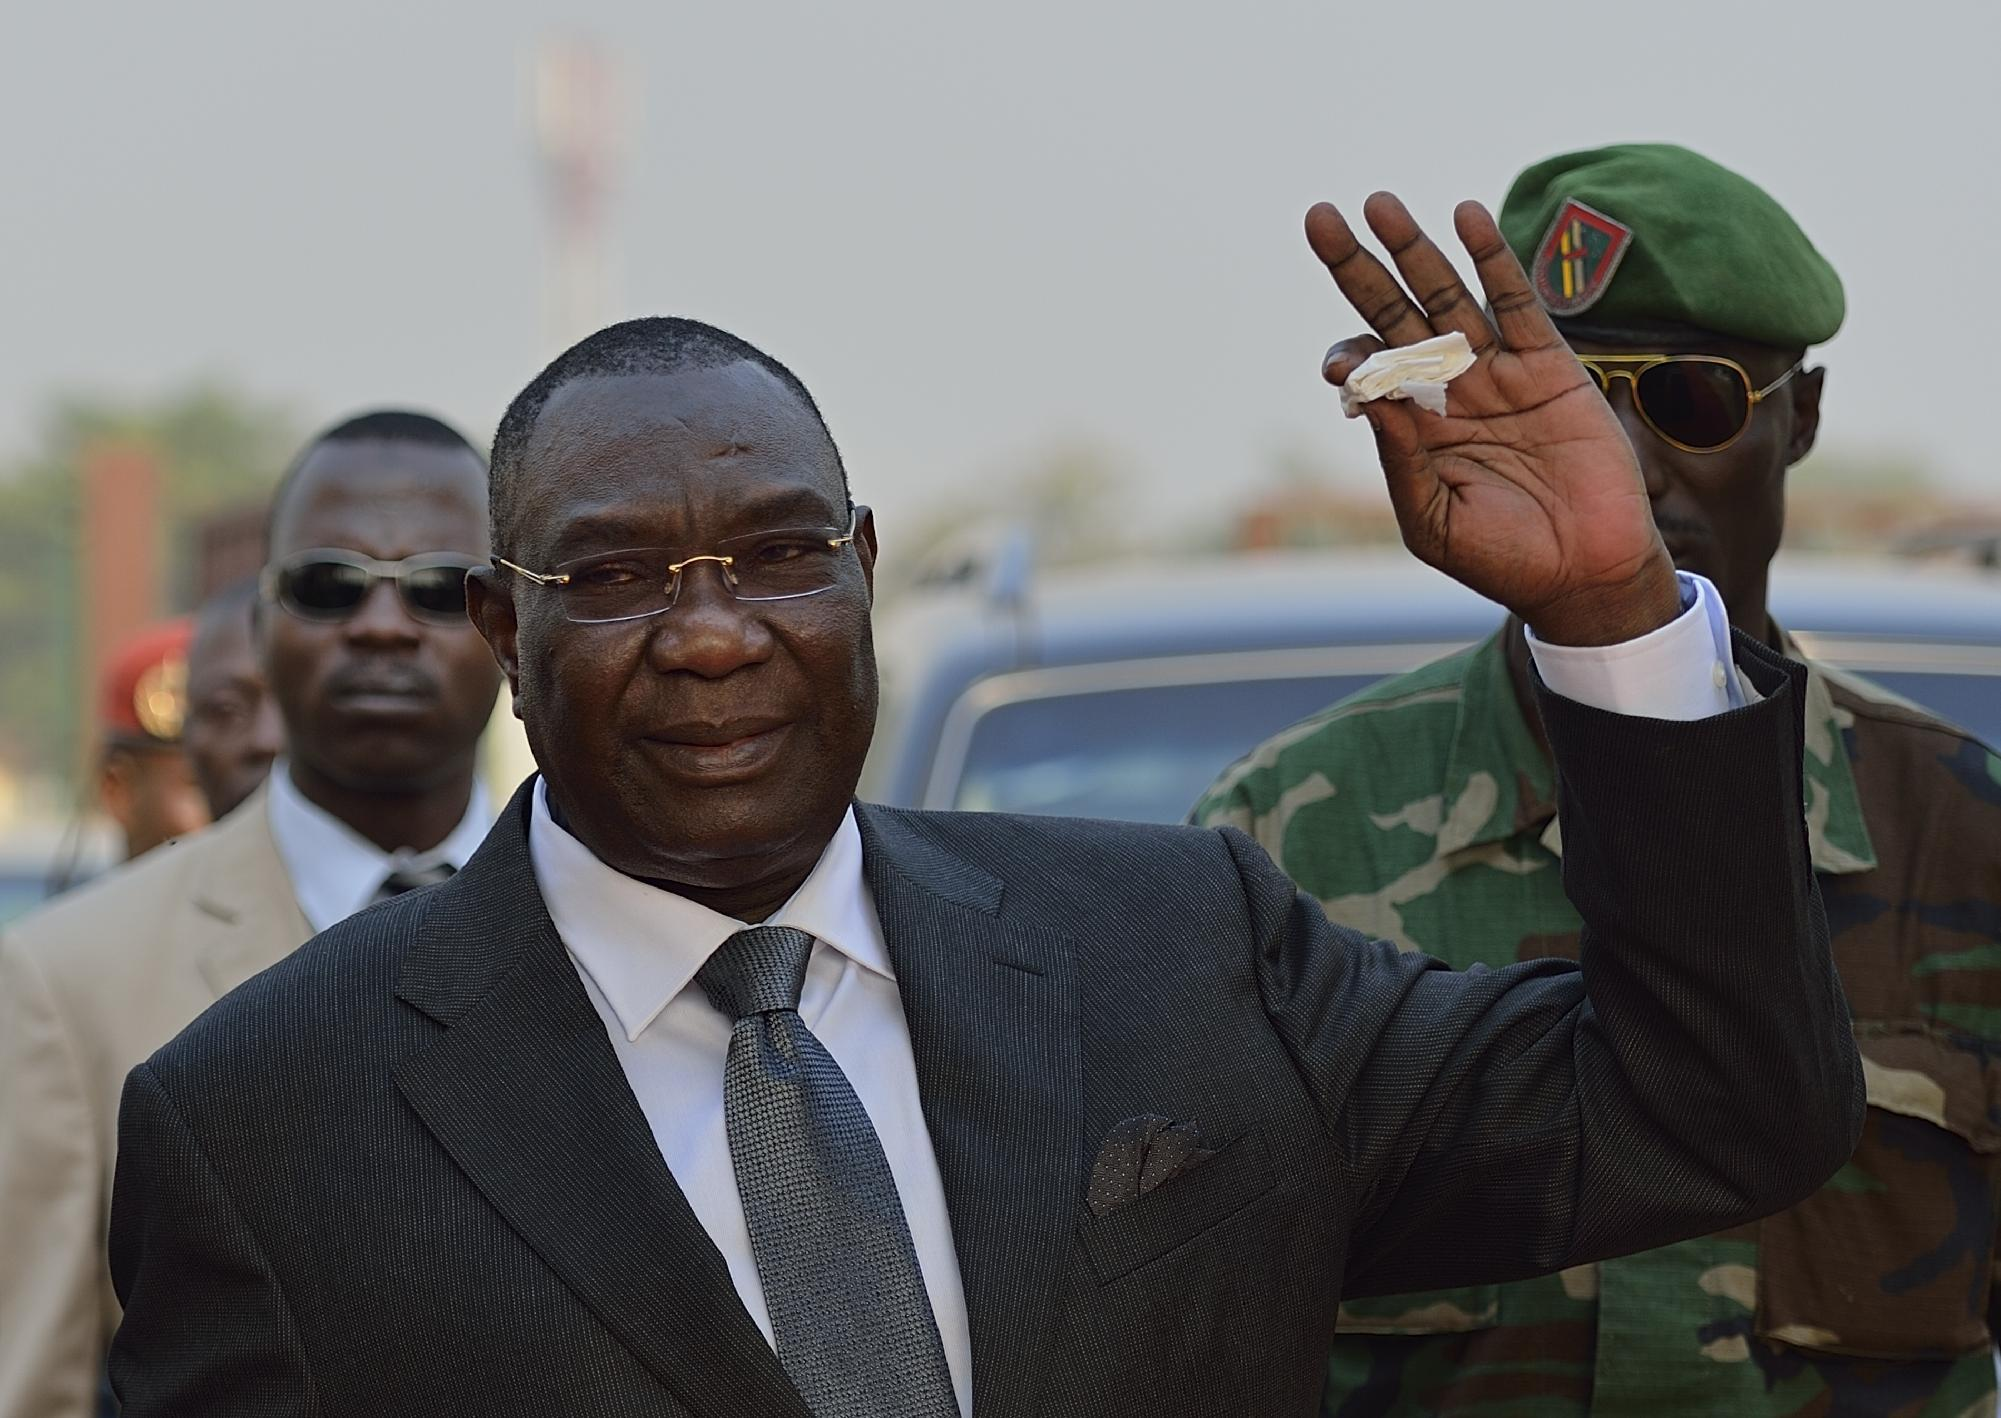 Then Central African Republic president Michel Djotodia gestures as he arrives at Mpoko Bangui airport on his way to N'Djamena to attend a summit on the unrest in the CAR, January 8, 2014 (AFP Photo/Eric Feferberg)